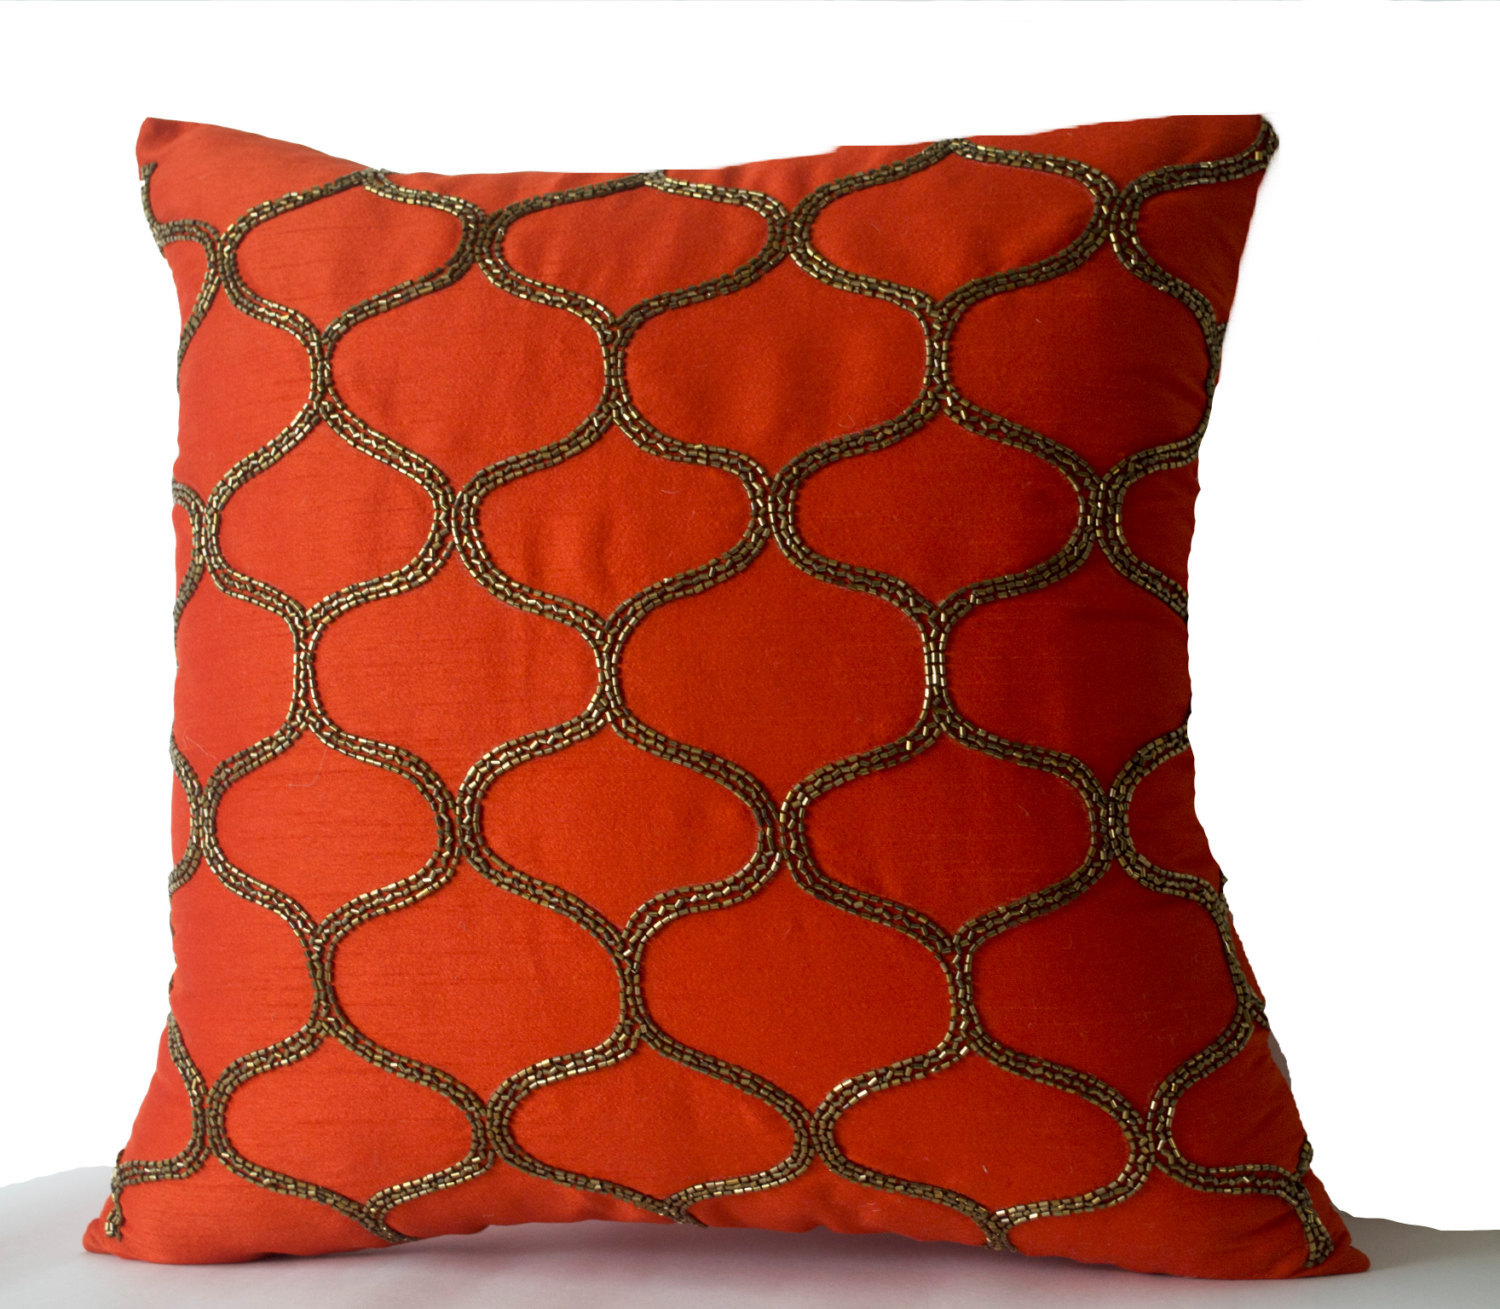 Orange Decorative Pillow Orange Silk Pillow Orange Brown Gold Throw Pillow - Pillows